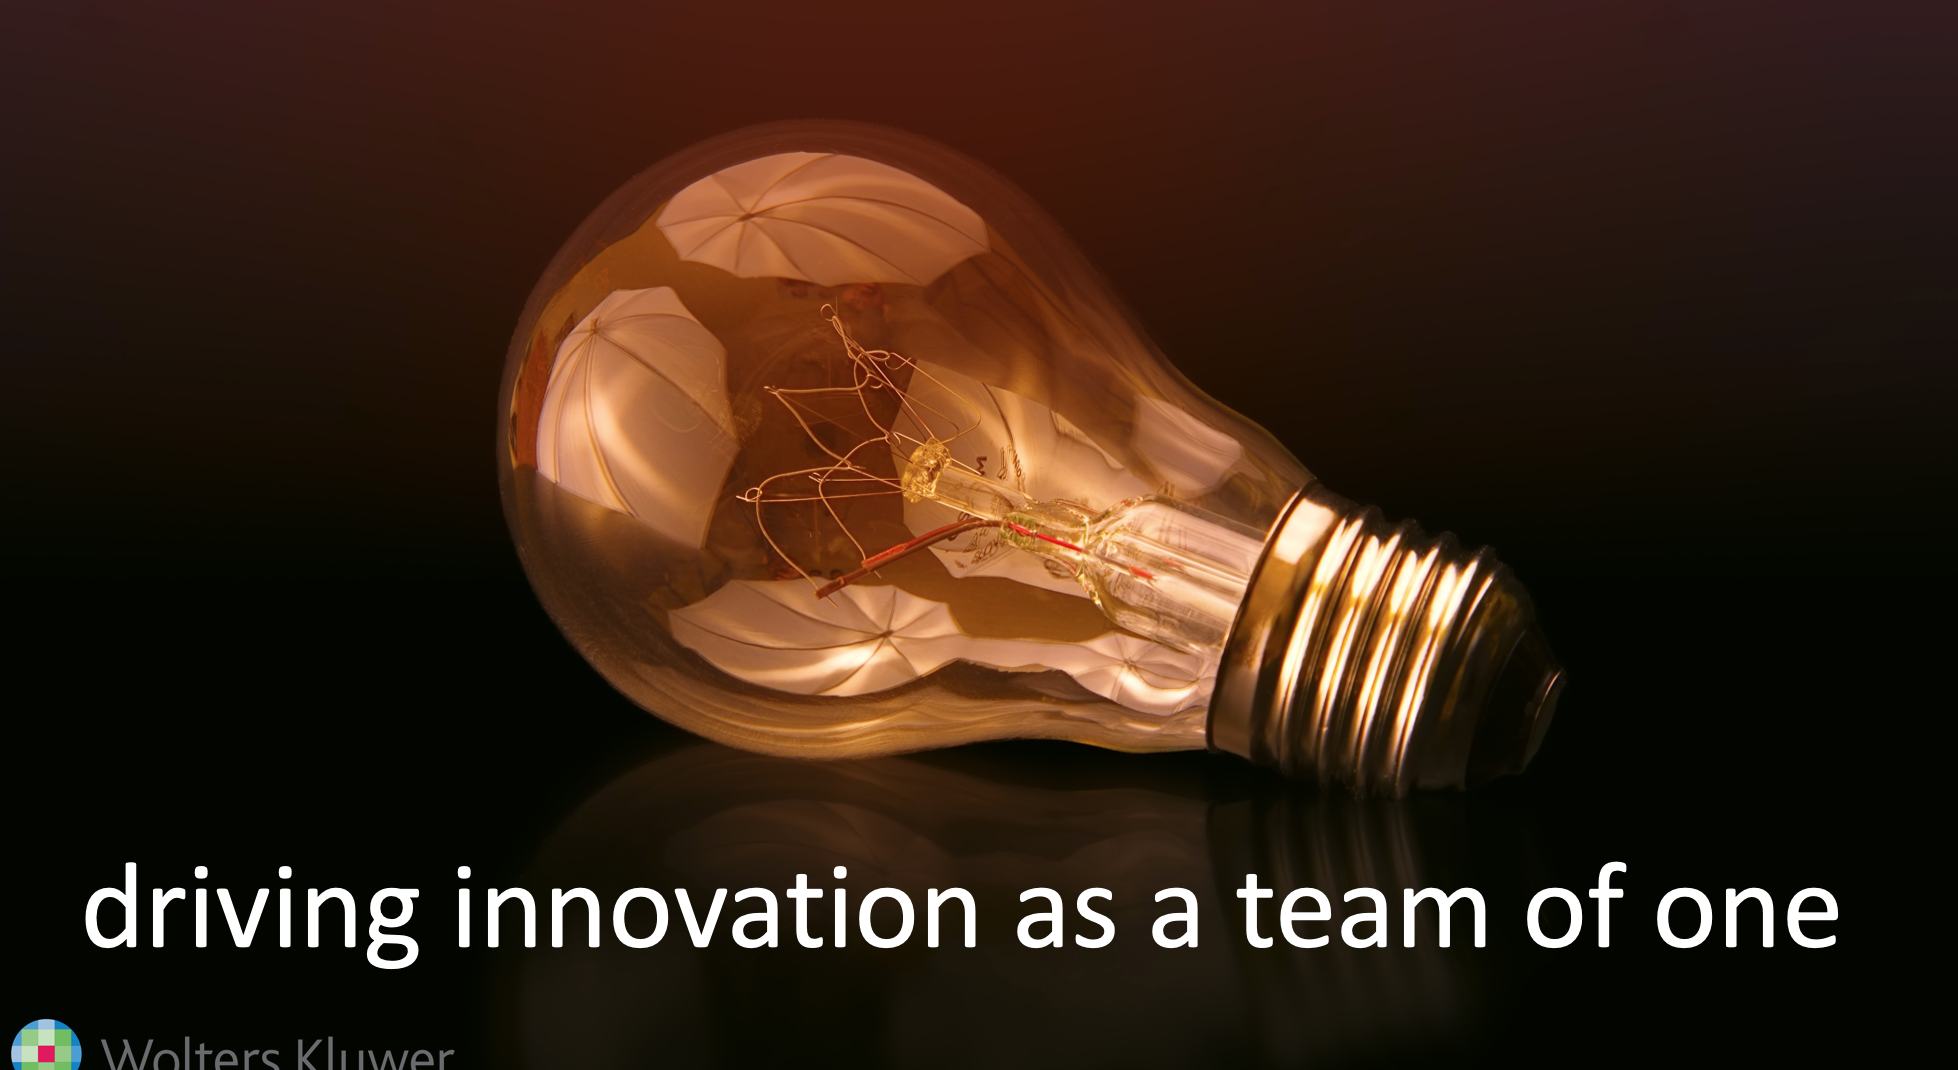 Managing an Innovation Pipeline as a Team of One